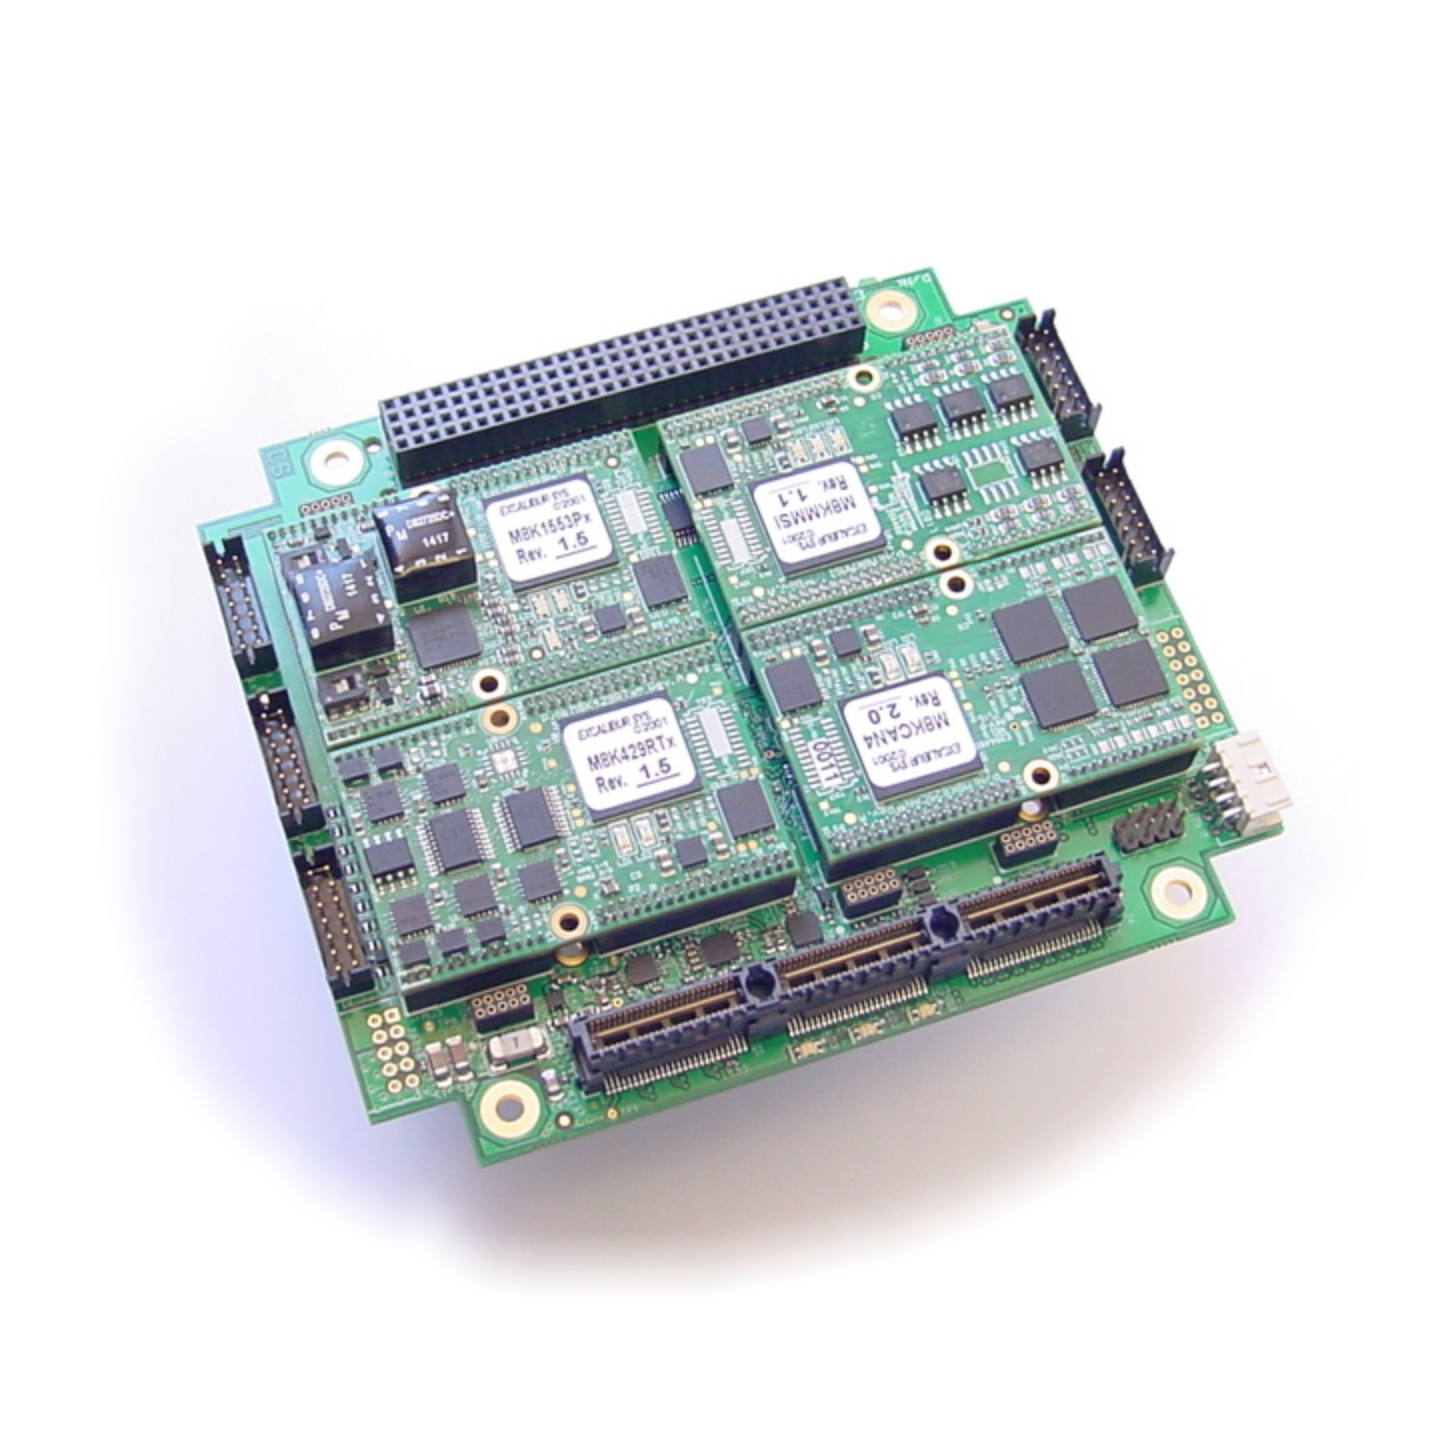 Advanced ARINC-429 test and simulation board for PCI/104-Express systems